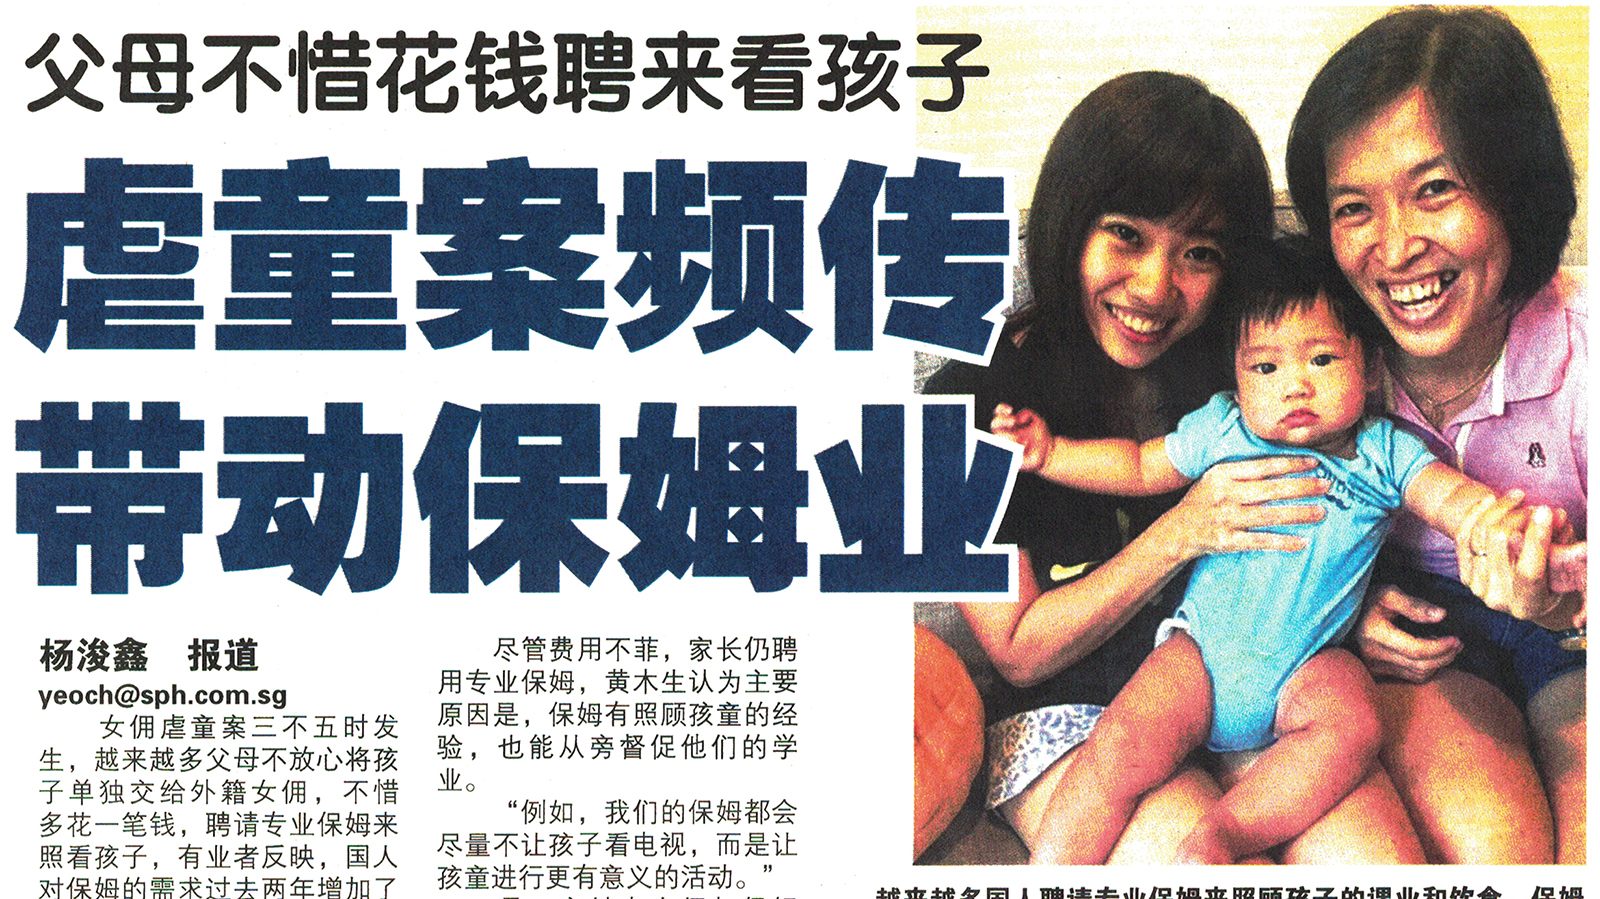 lianhe wanbao coverage